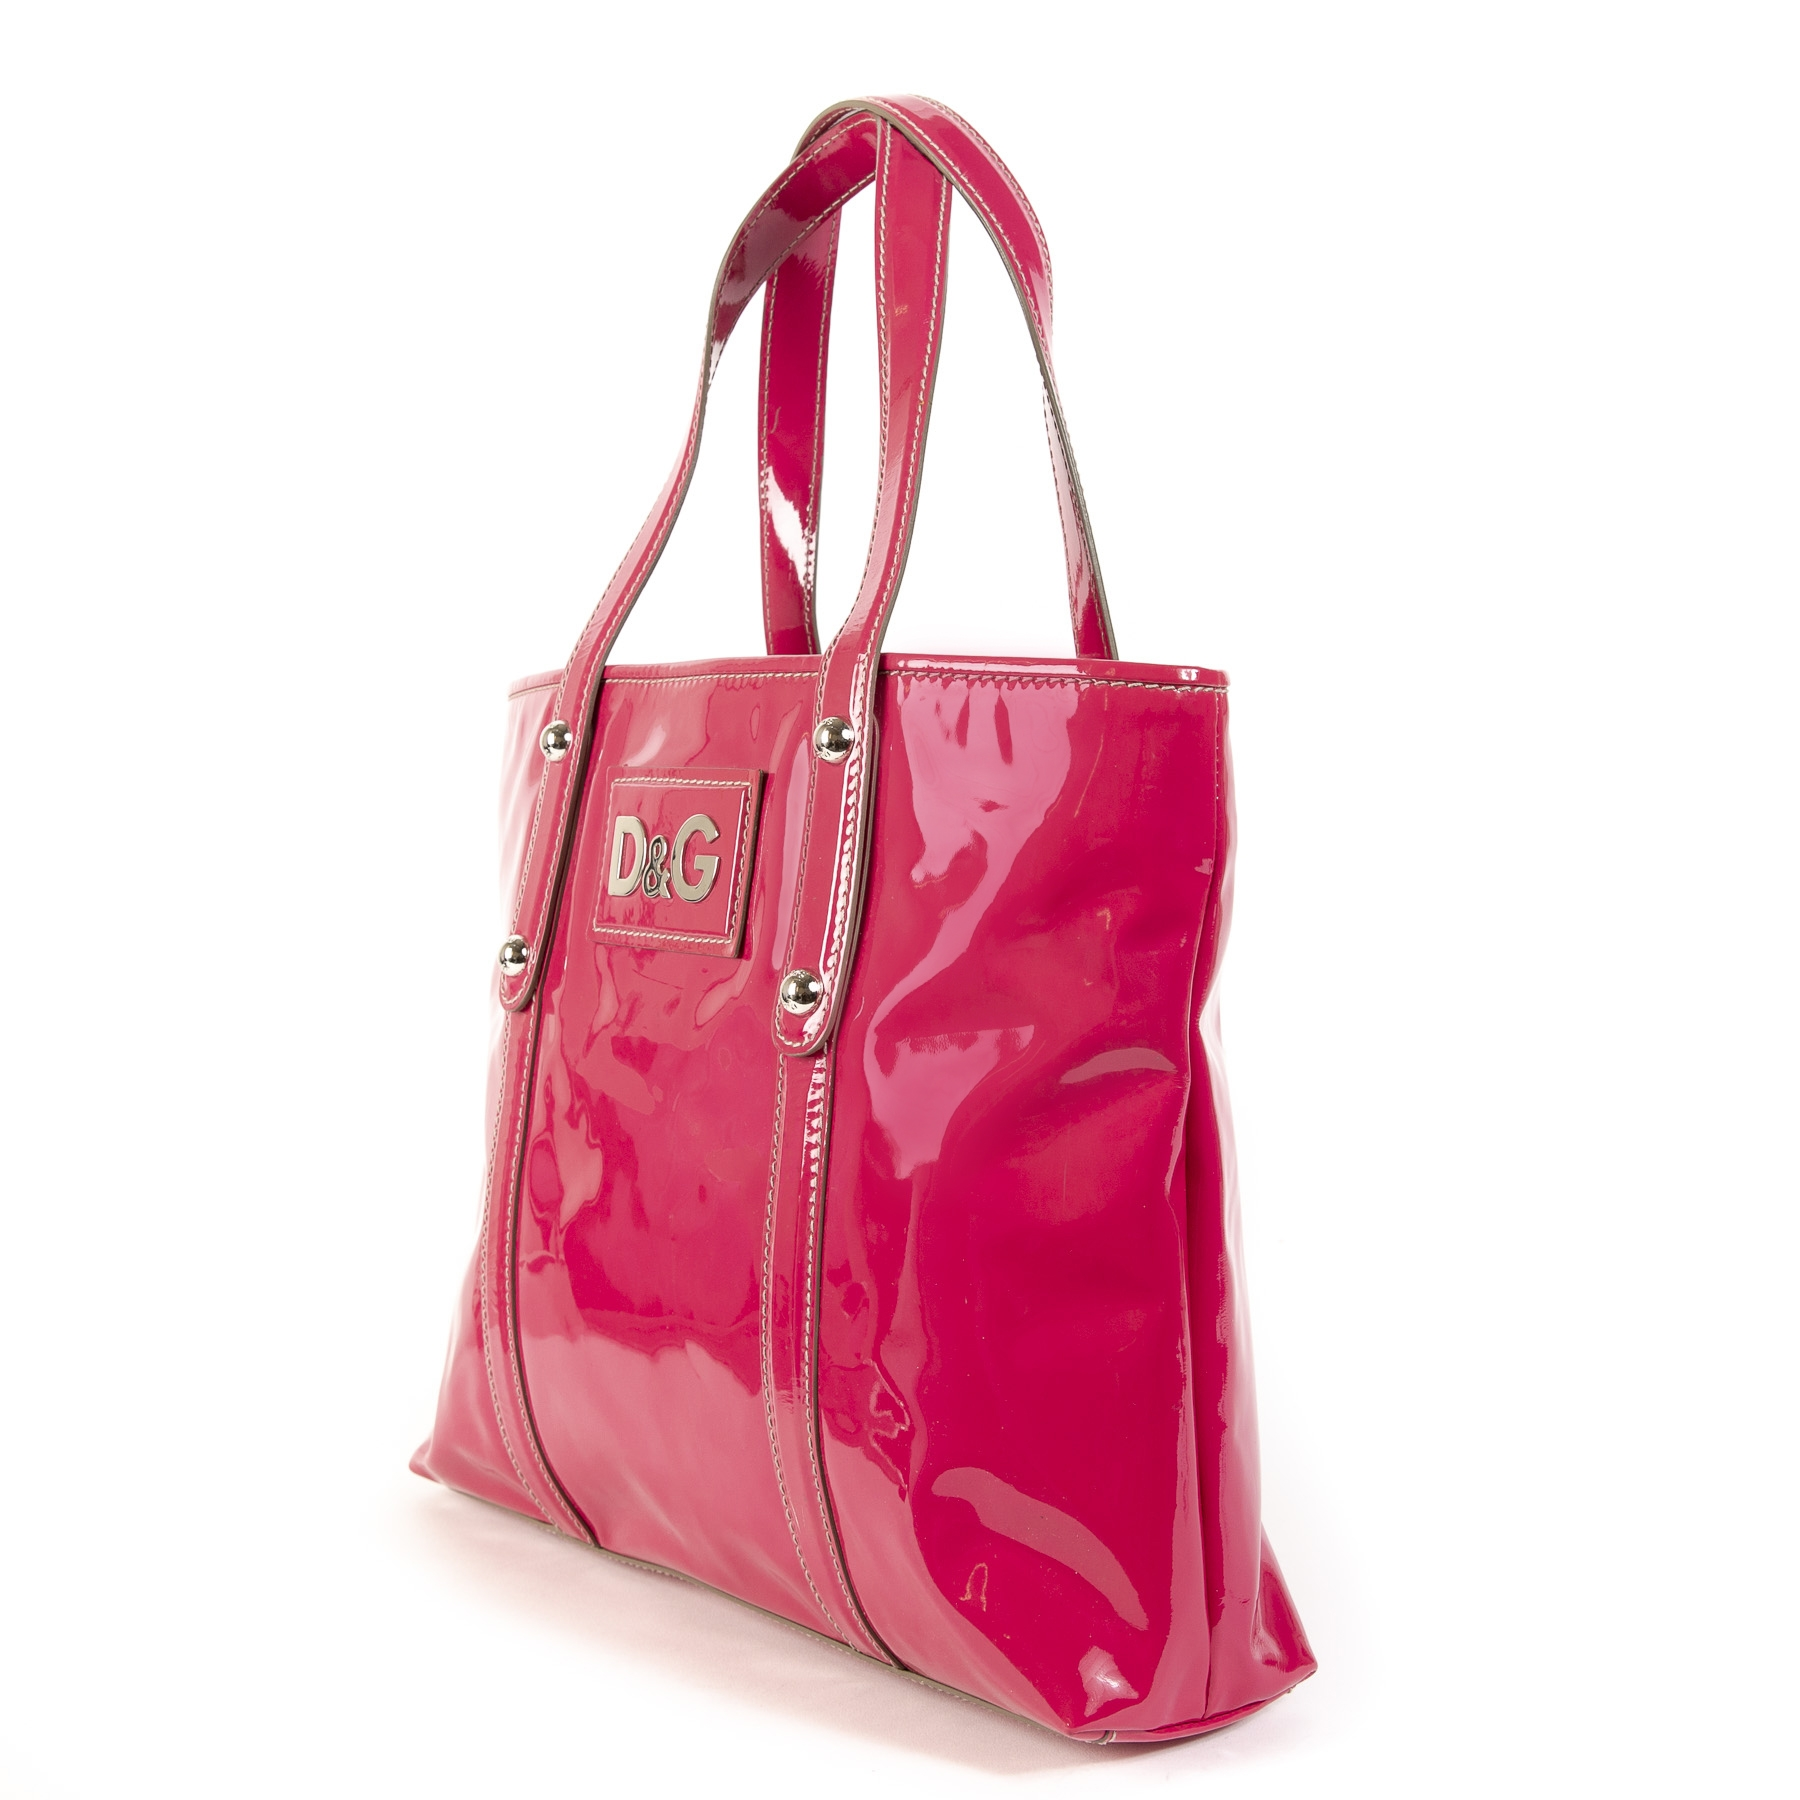 Dolce & Gabbana Pink Patent Leather Estelle Tote